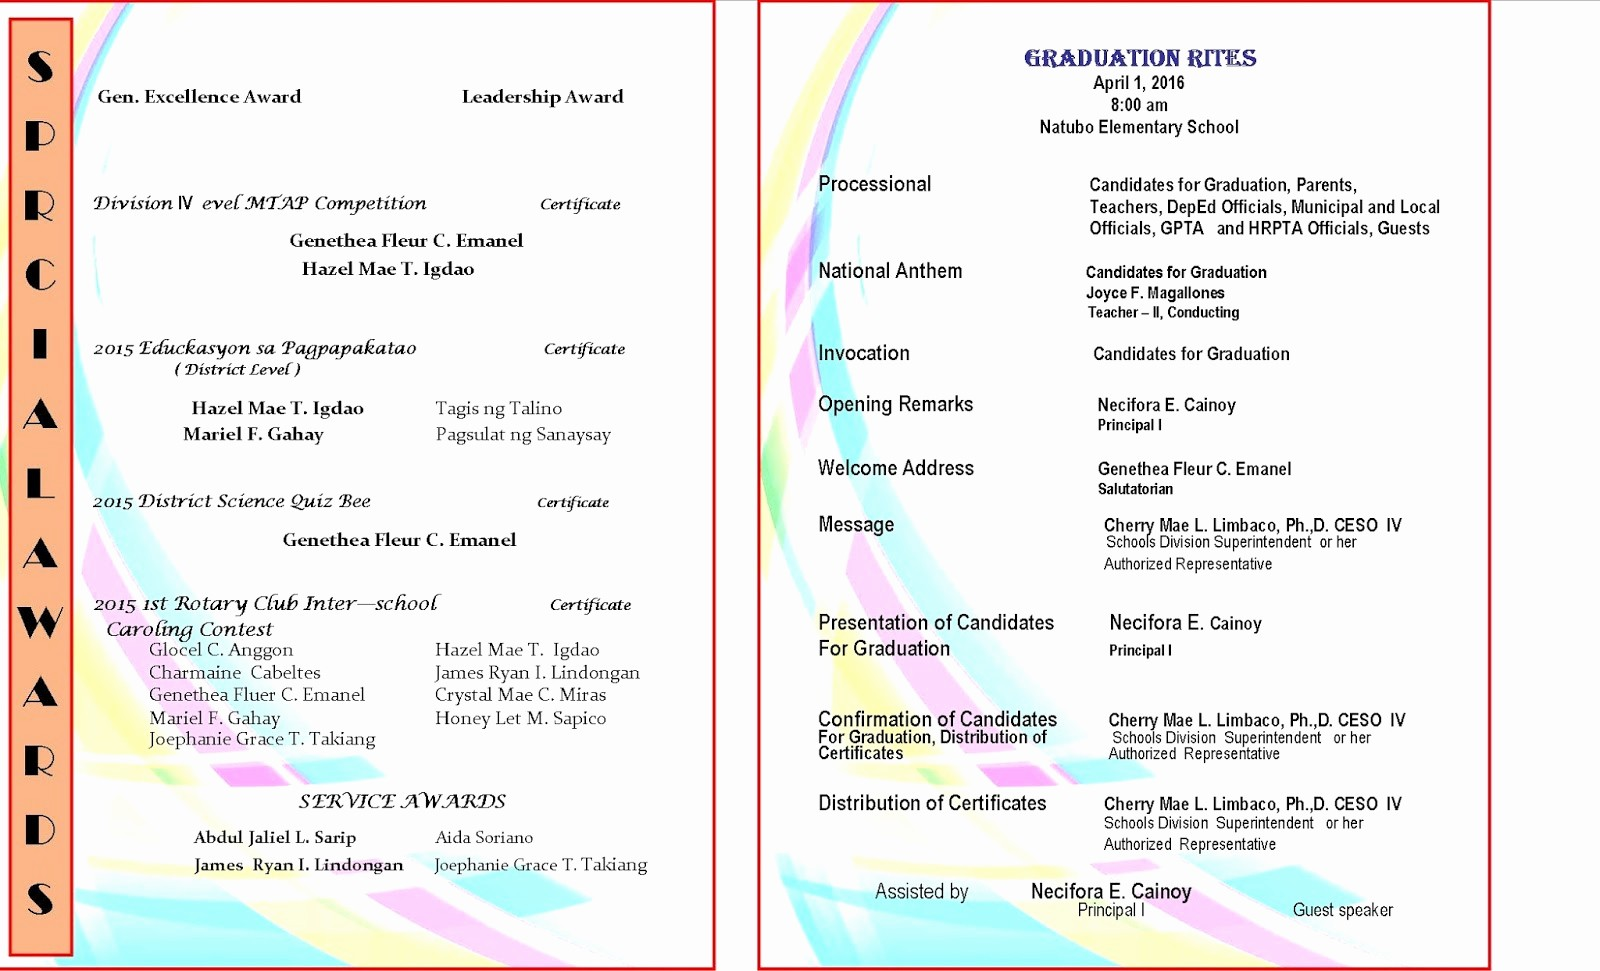 High School Graduation Program Template New 2015 2016 Graduation Program New Template Deped Lp S